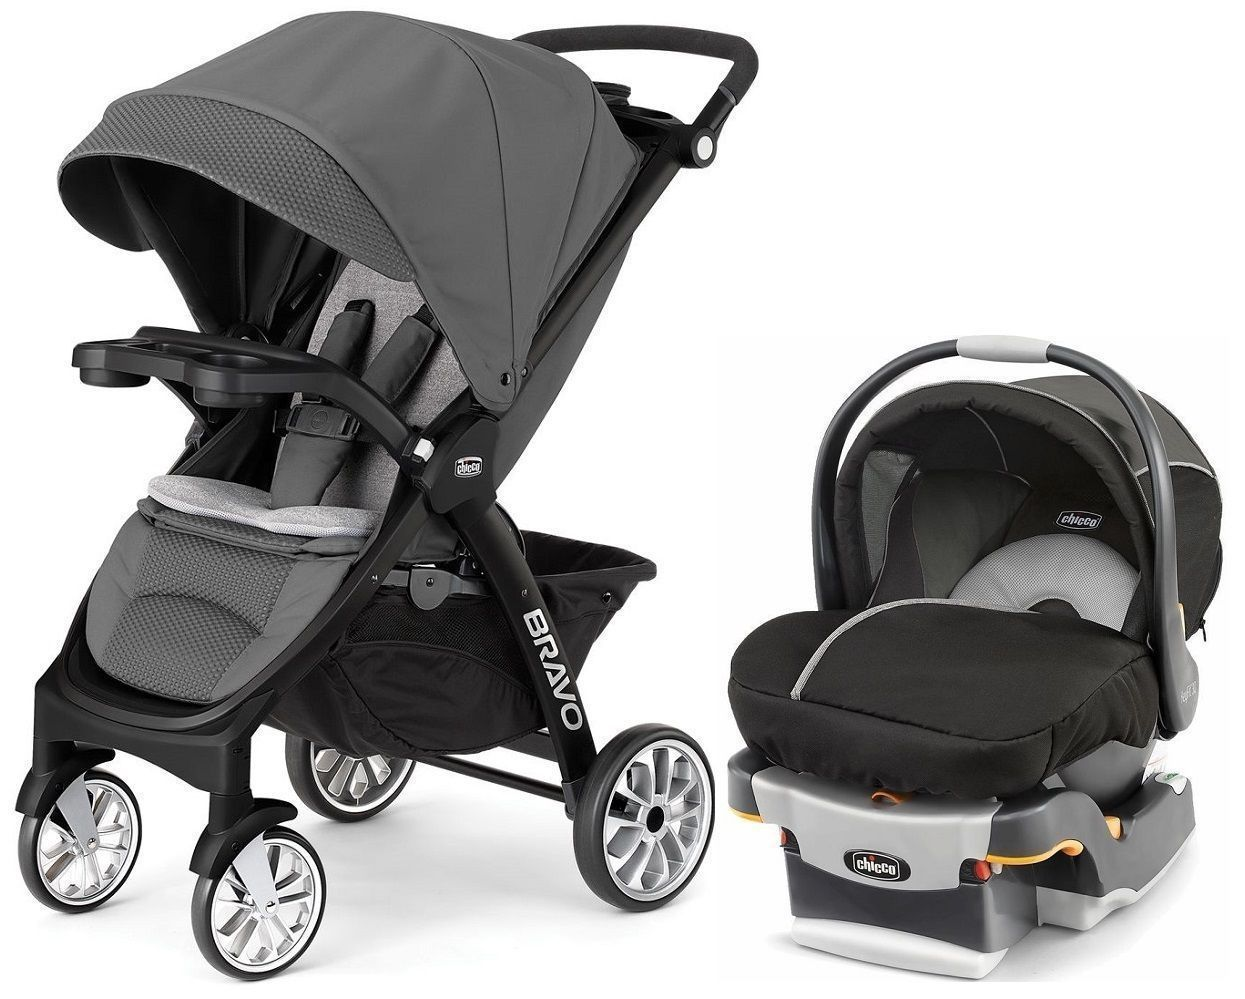 Chicco Bravo LE Trio 3in1 Baby Travel System Stroller